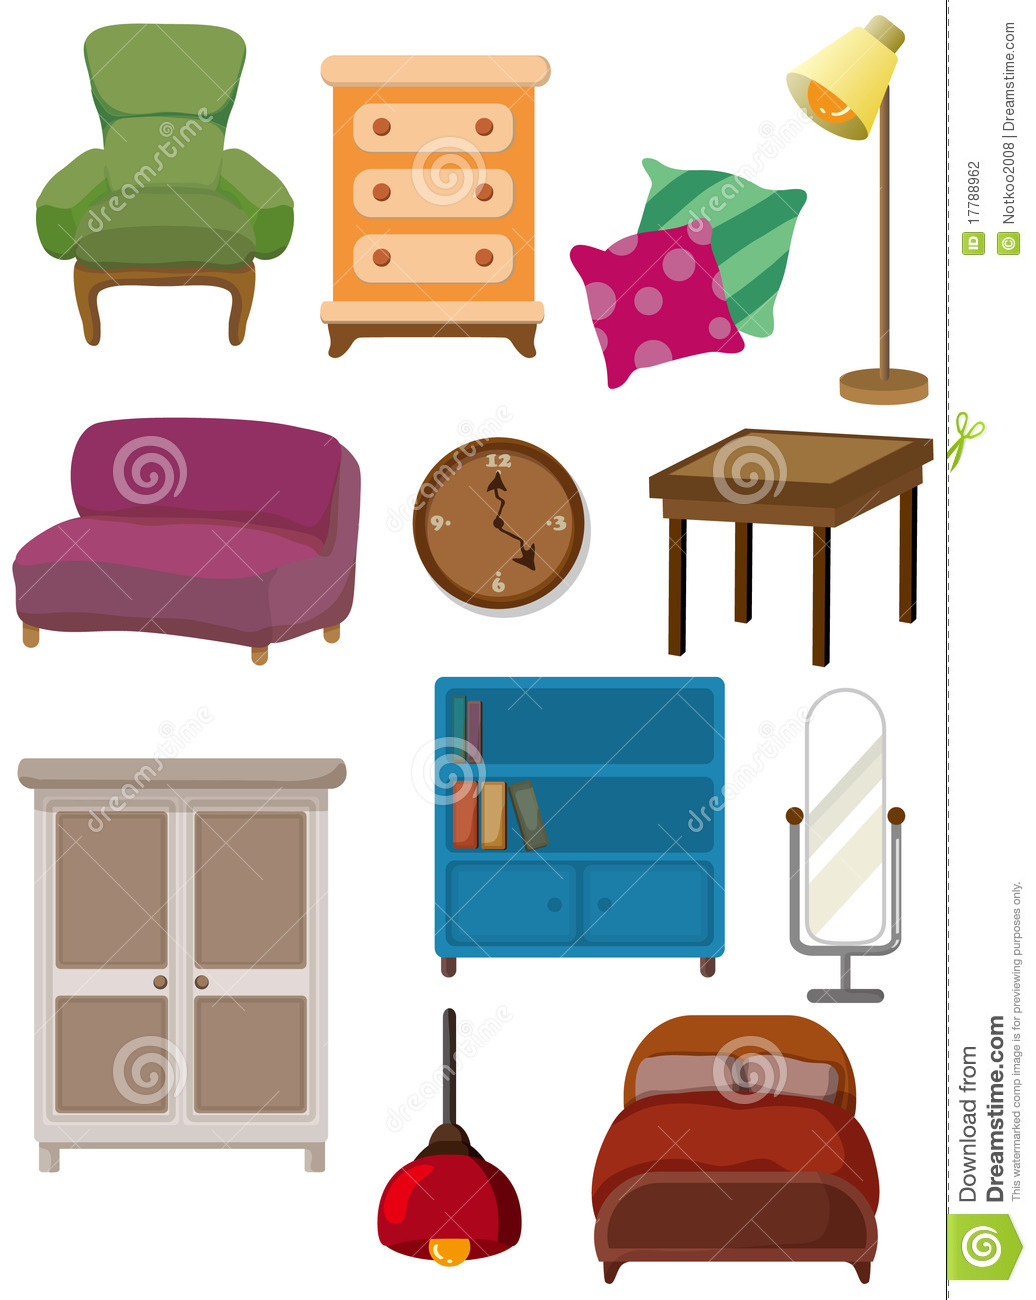 Cartoon Furniture Icon Stock Vector Illustration Of Character  # Los Muebles Powerpoint